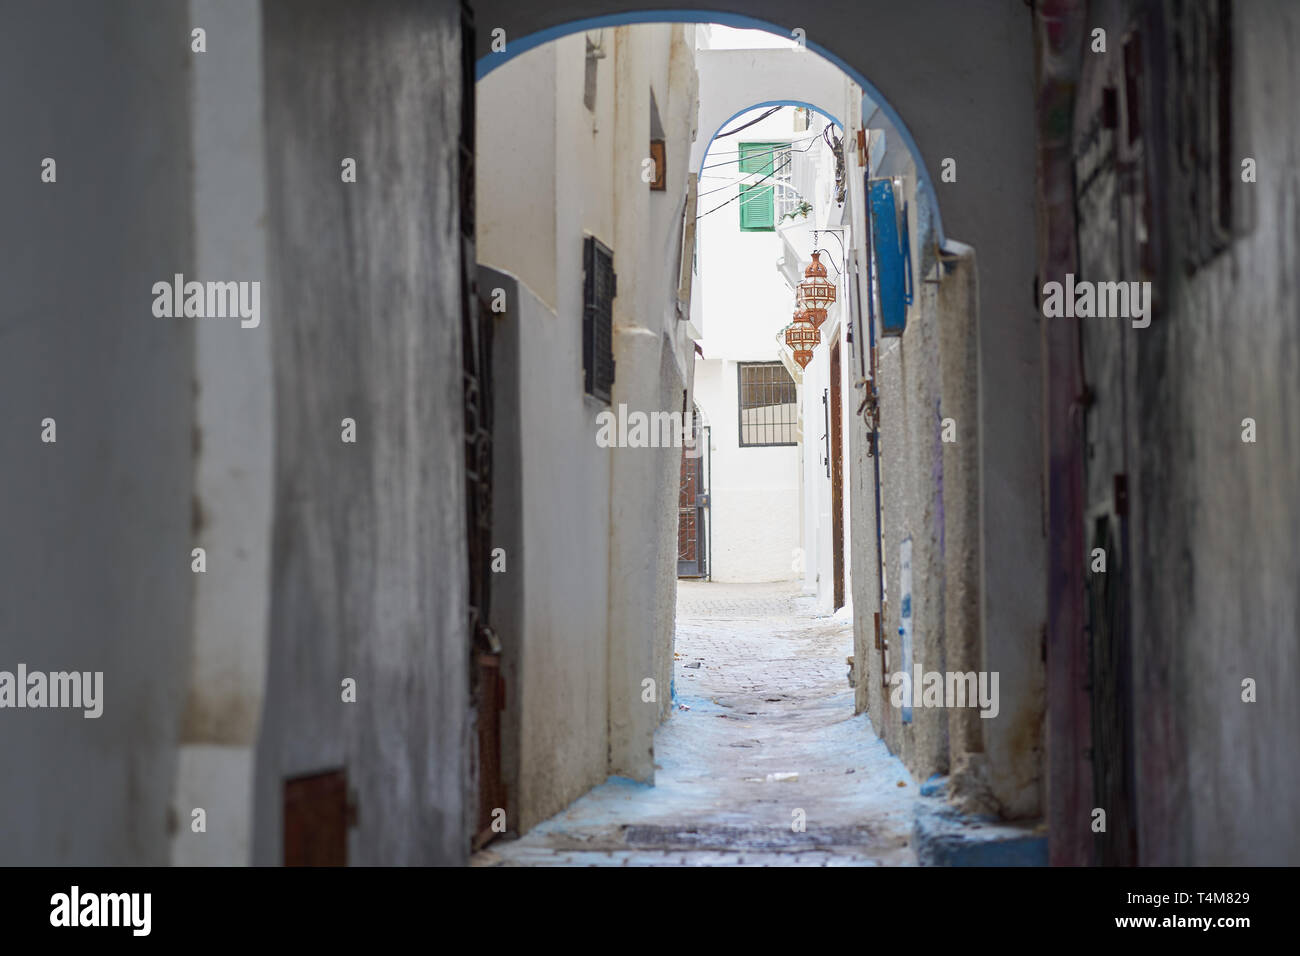 Alley leading up to the white medieval Kasbah, in the medina quarter of Tangier (Tanger), Morocco - Stock Image